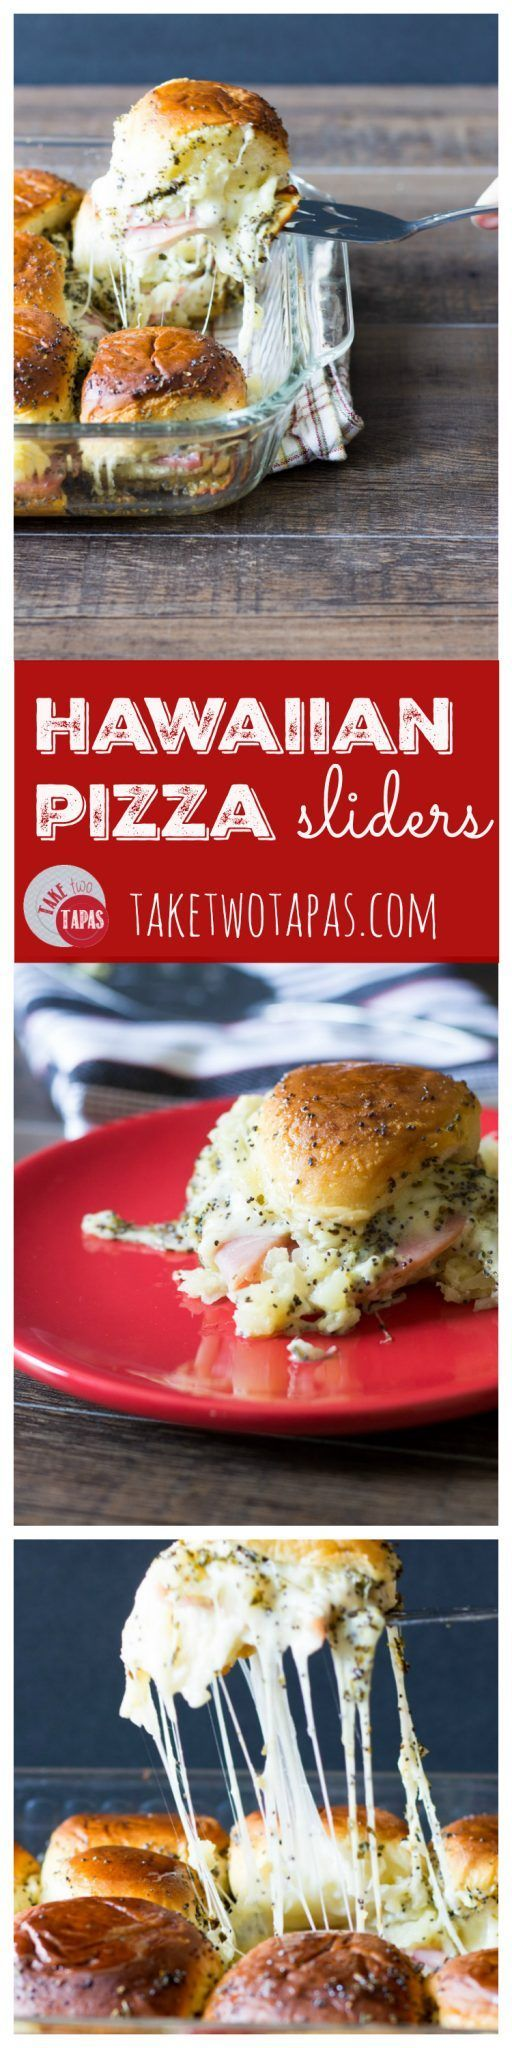 All the yummy ham, pineapple, and pizza spices on a Hawaiian pizza are found in these sliders. Don't forget all that stretchy cheese! Hawaiian Pizza Sliders Recipe | Take Two Tapas